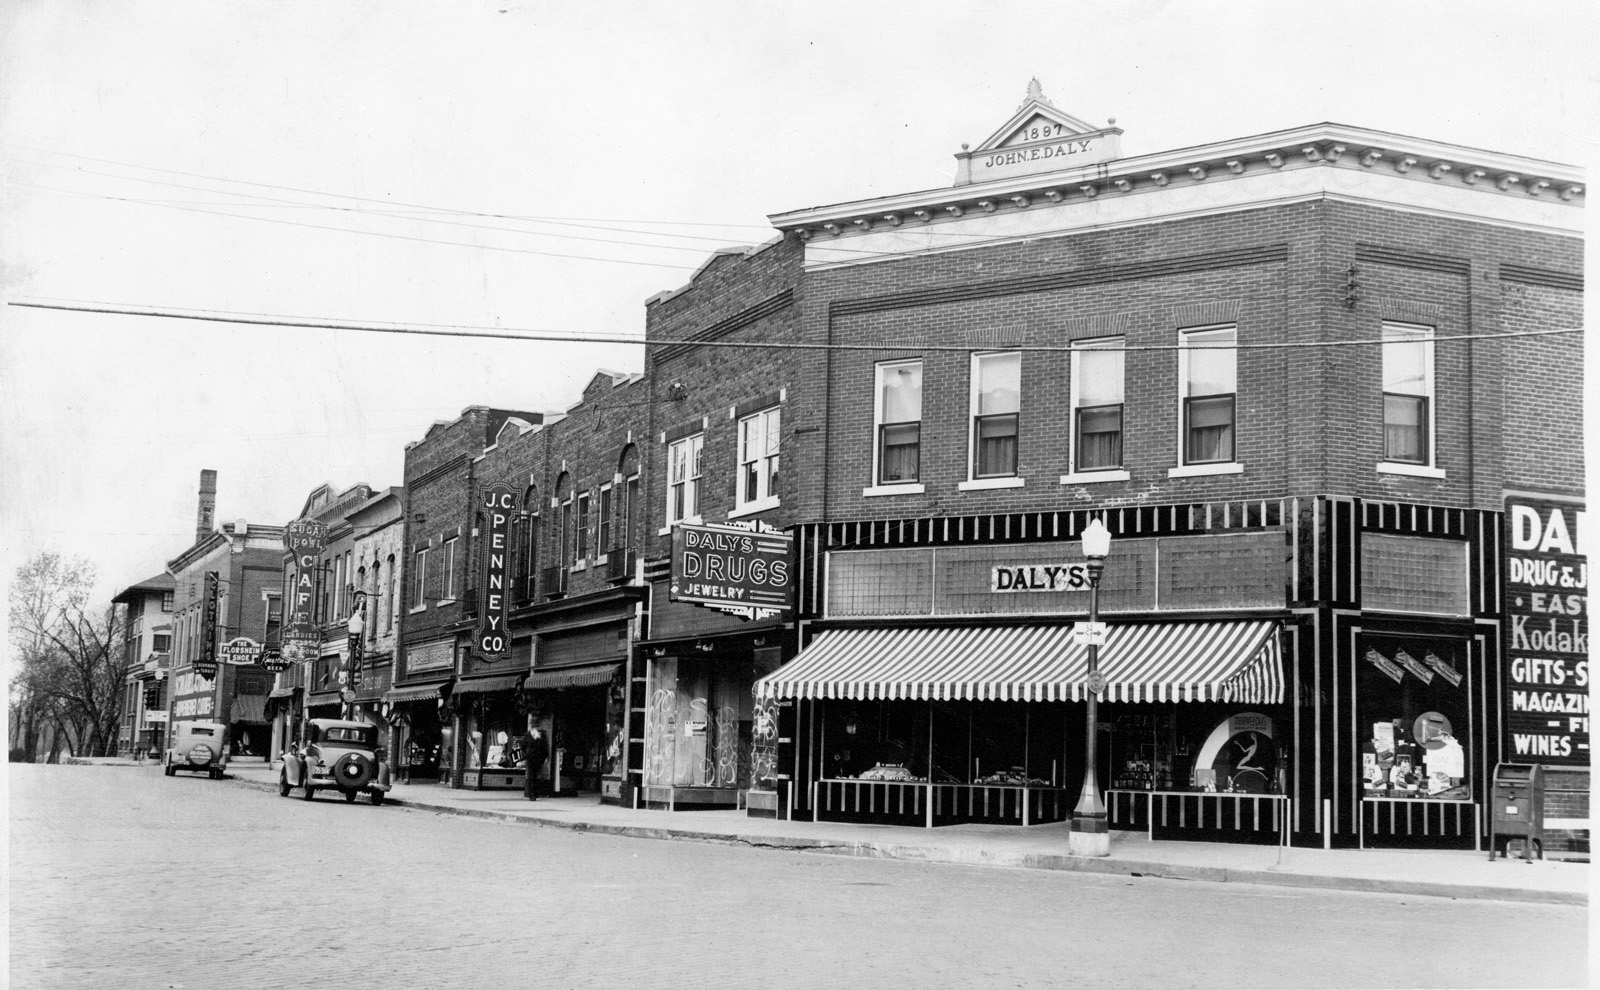 J.C. Penney's on the Daly Block, circa 1930 (Photo: South Wood Co. Historical Corporation)